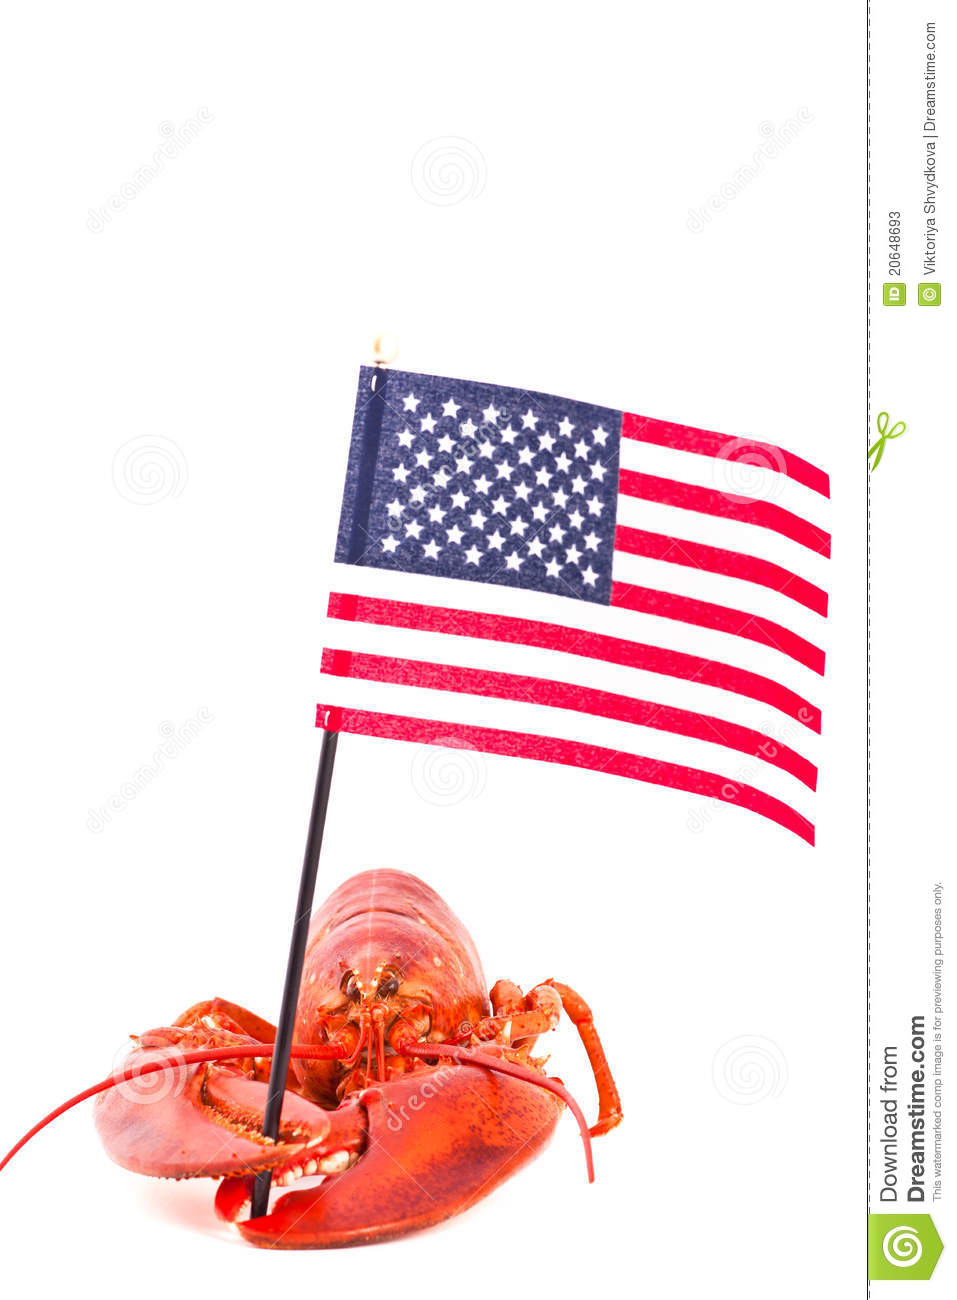 Lobster With American Flag Stock Photos - Image: 20648693